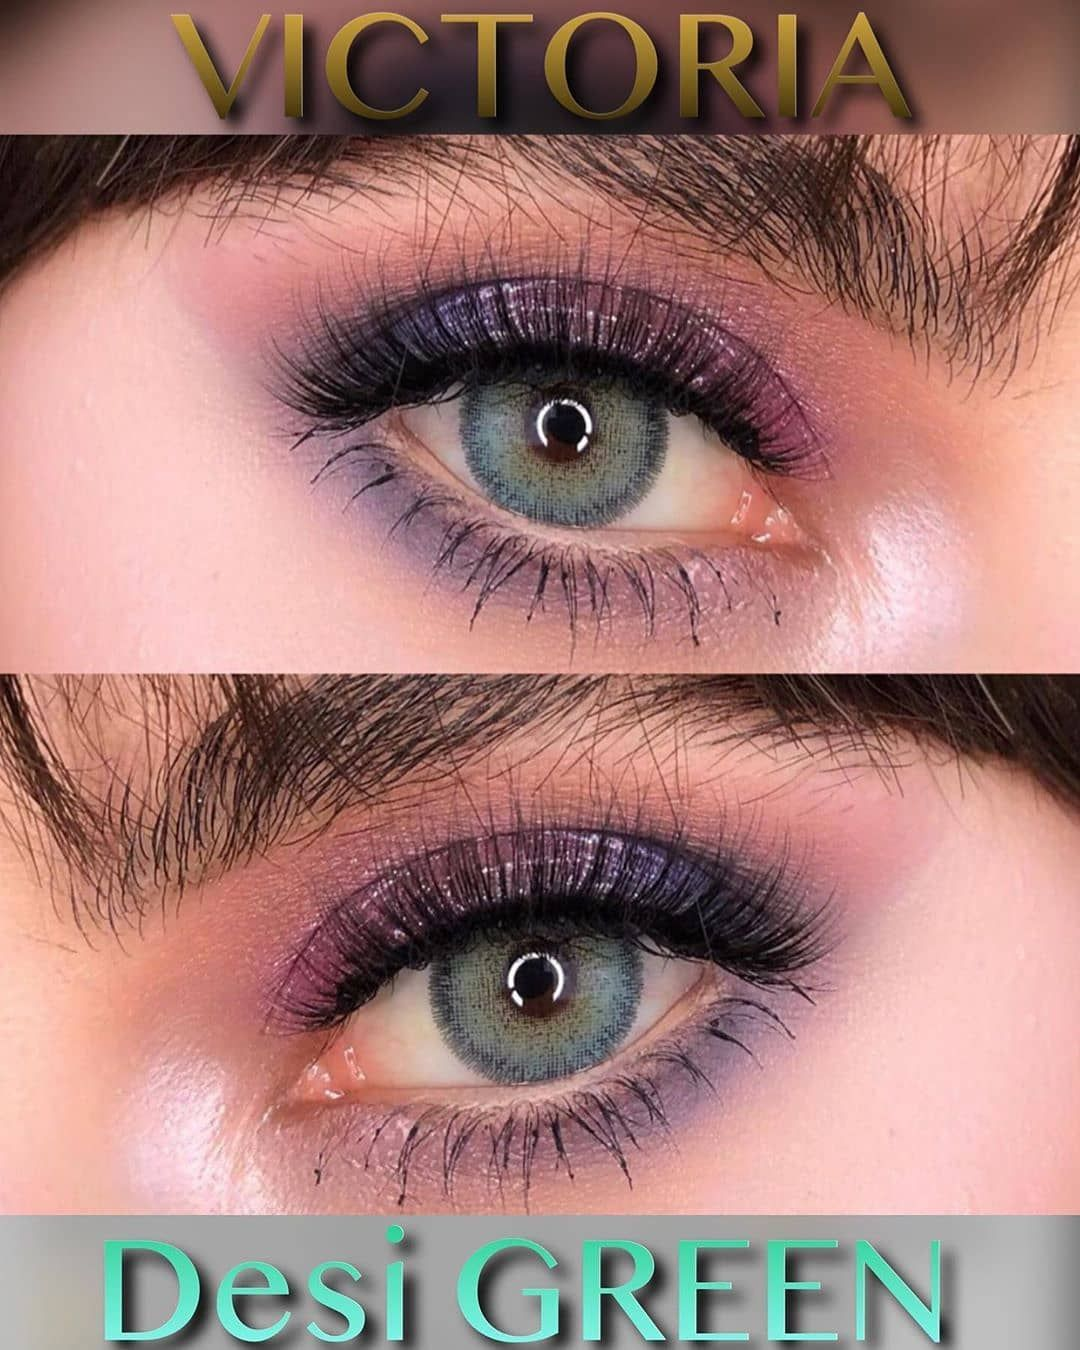 New The 10 Best Eye Makeup Today With Pictures Eyemakeup Eye Makeup Cool Eyes Instagram